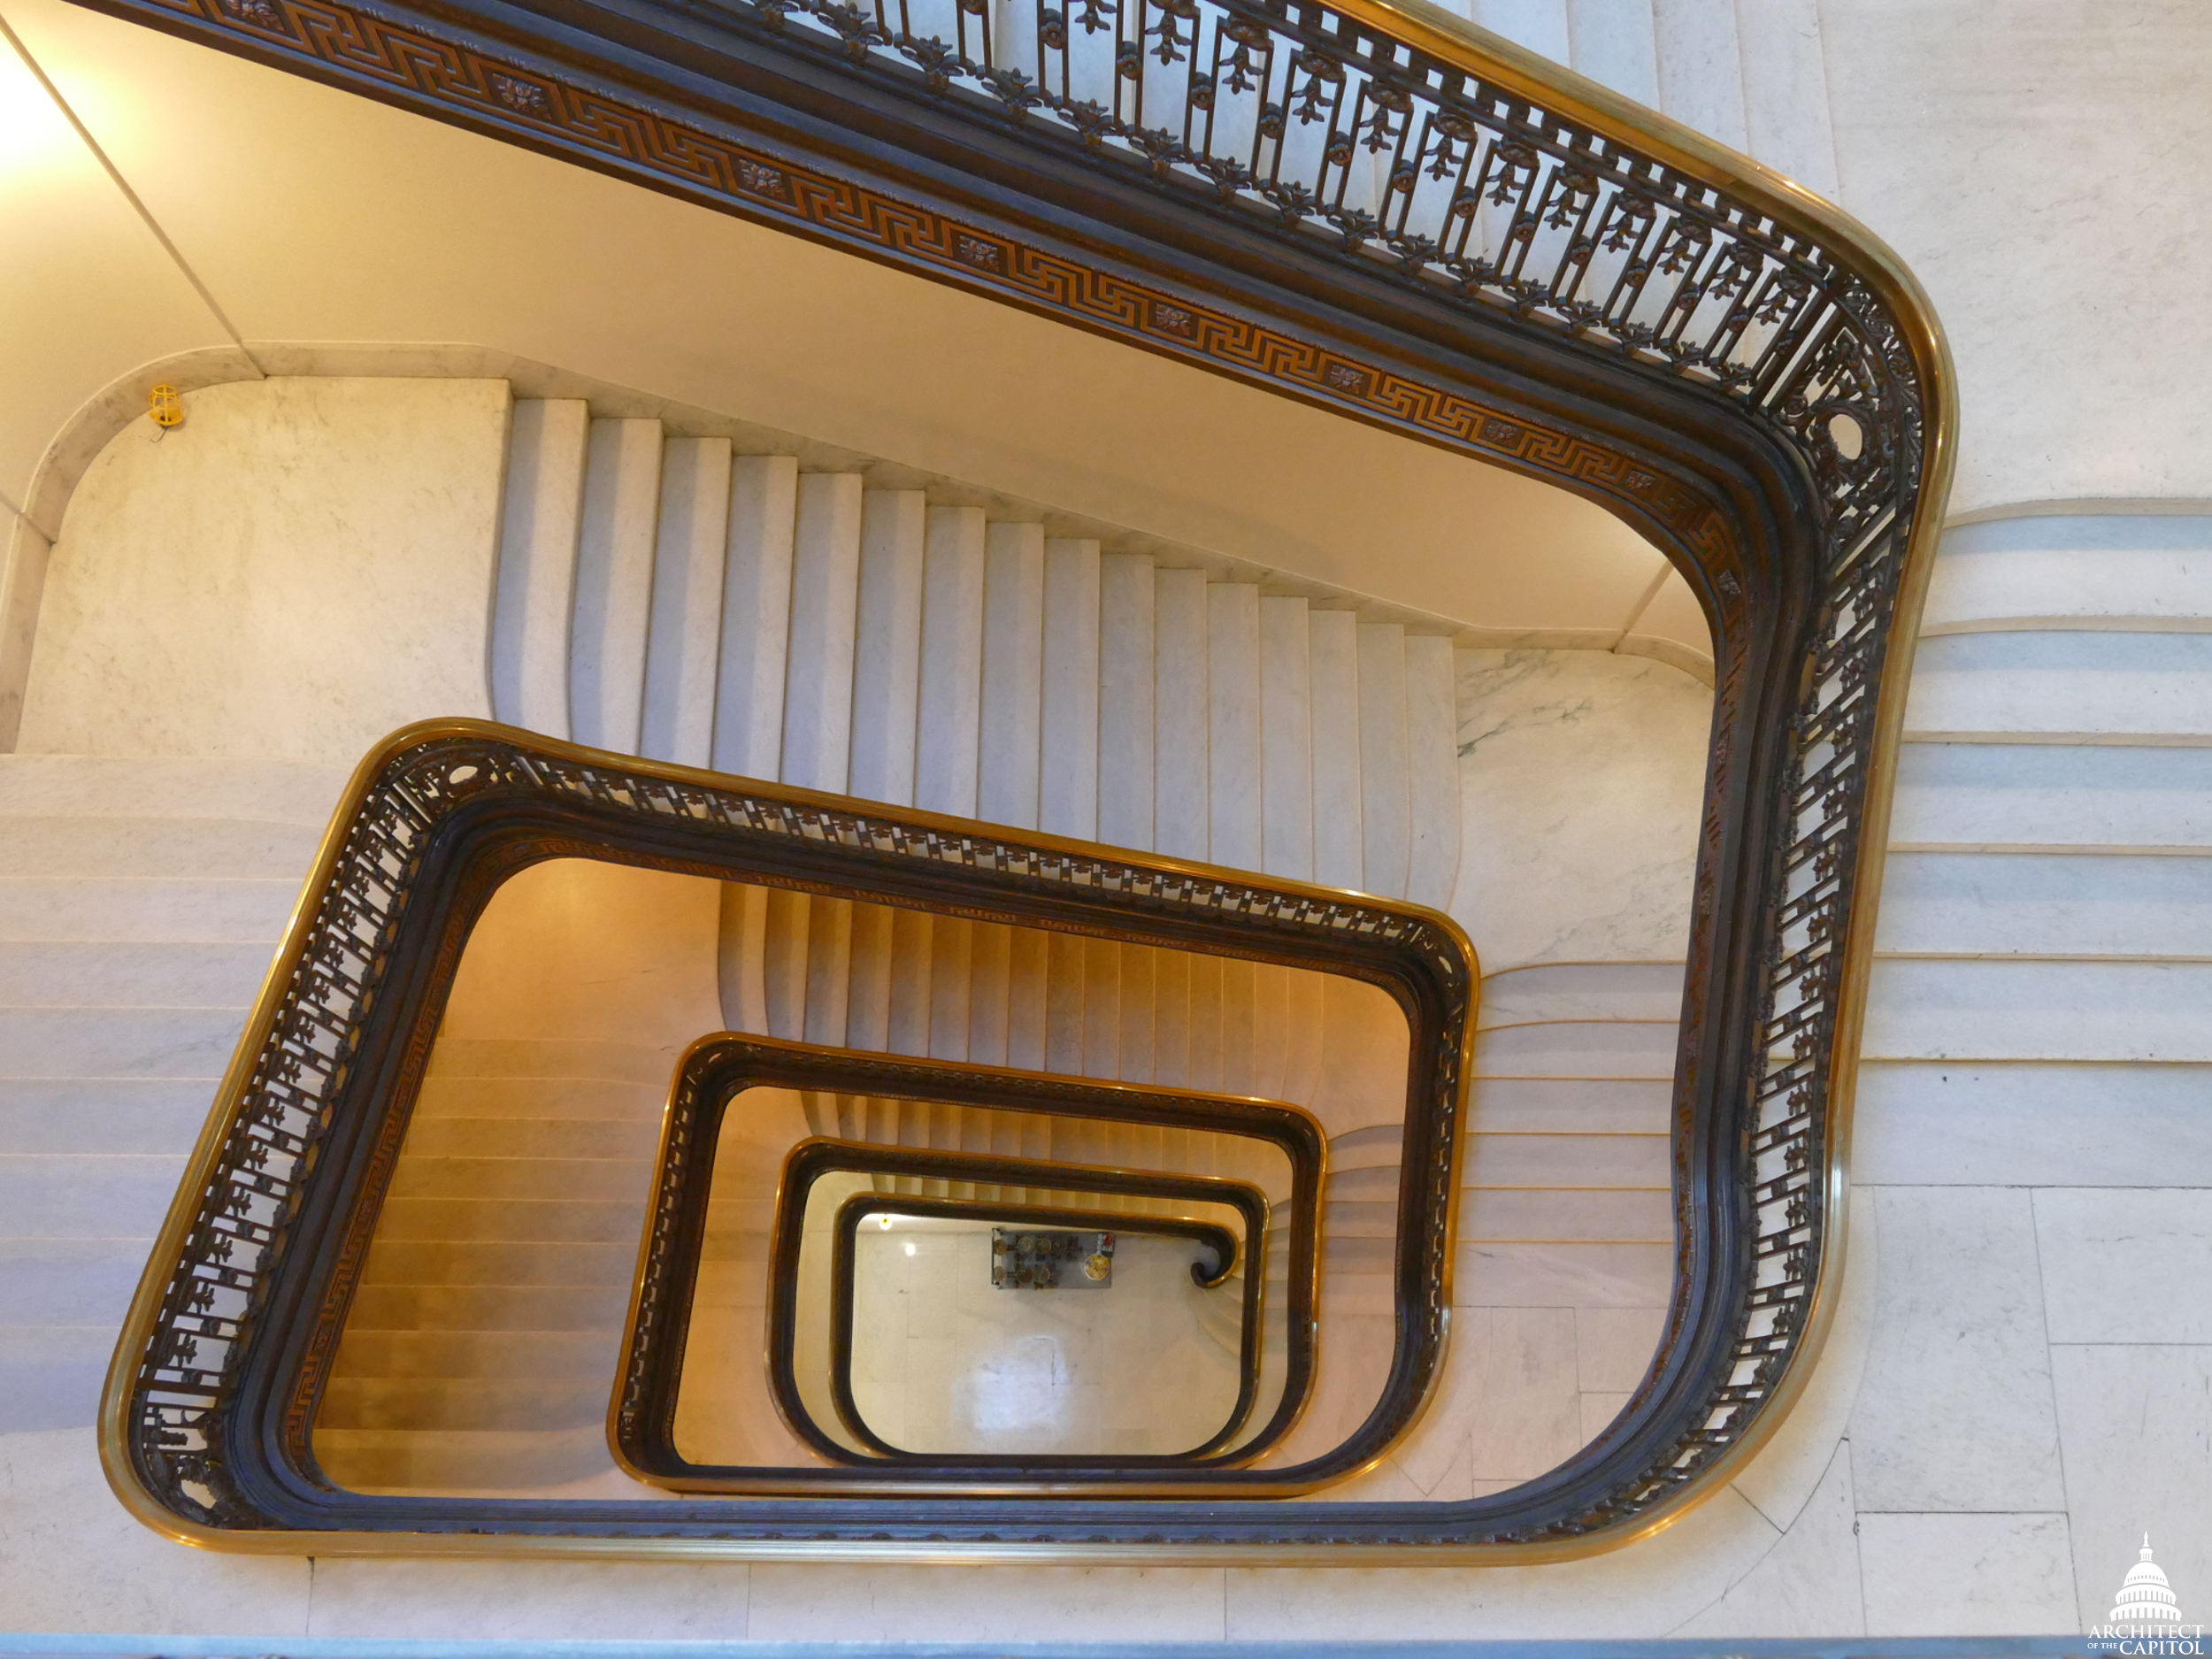 Overhead view of the Russell southeast stairwell, an open staircase serving all floors of the Russell Building.